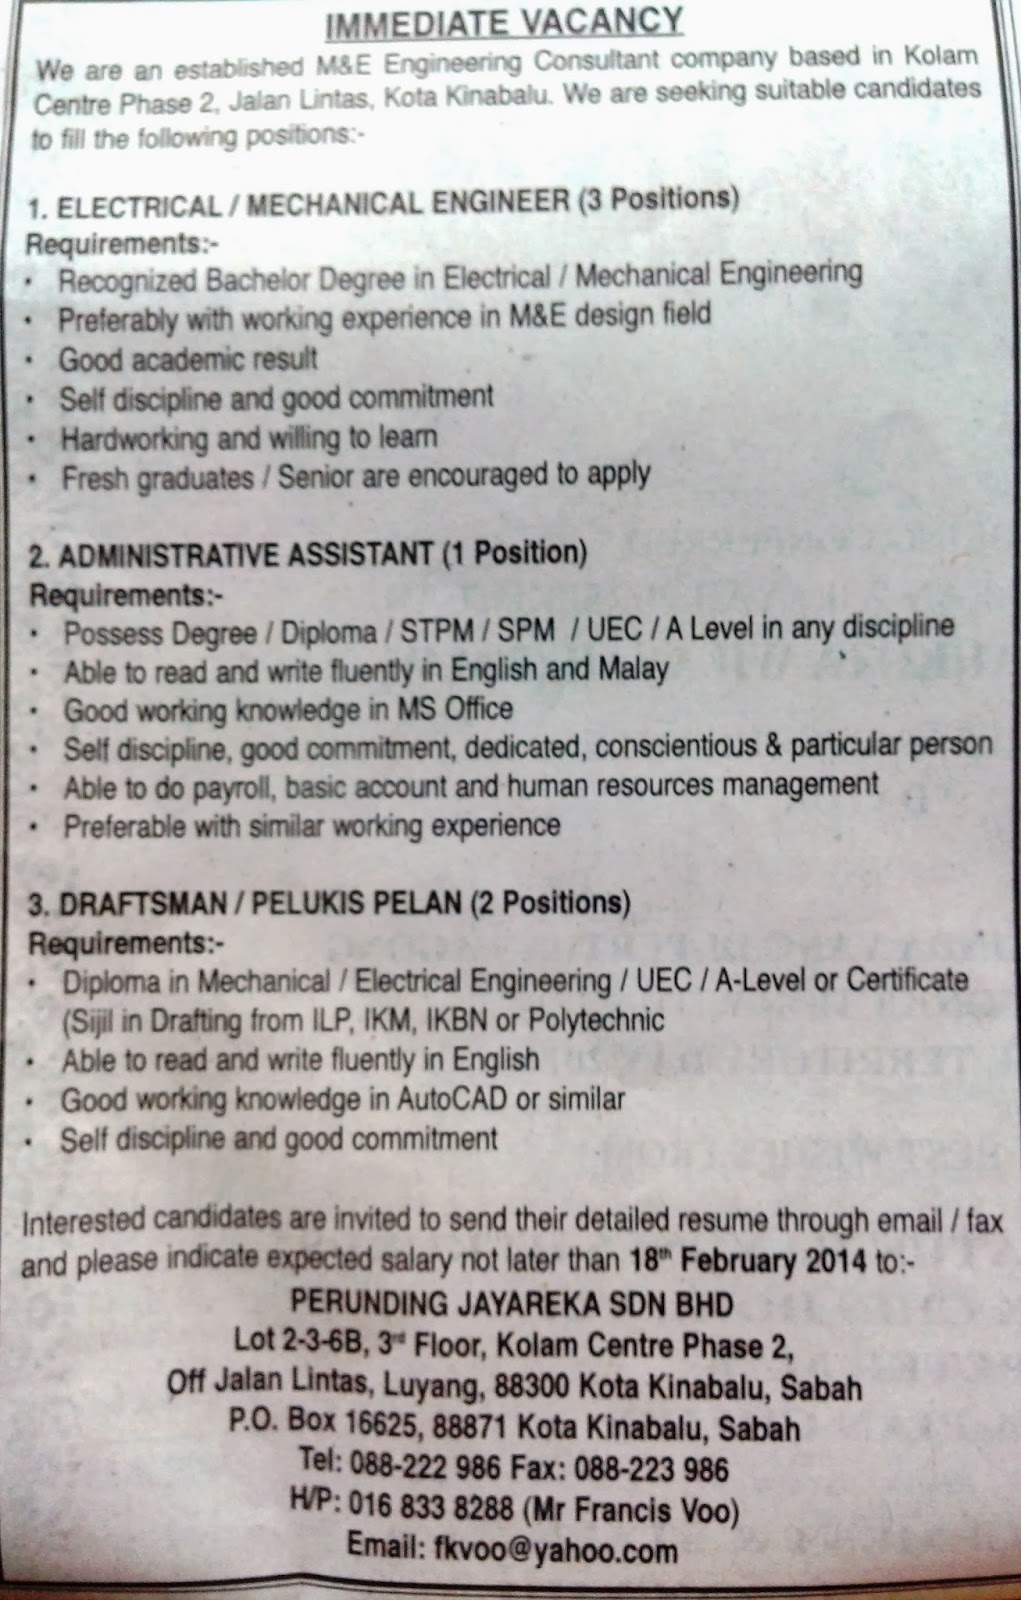 MULTIPLE VACANCIES IN M&E ENGINEERING CONSULTANT COMPANY - PERUNDING ...